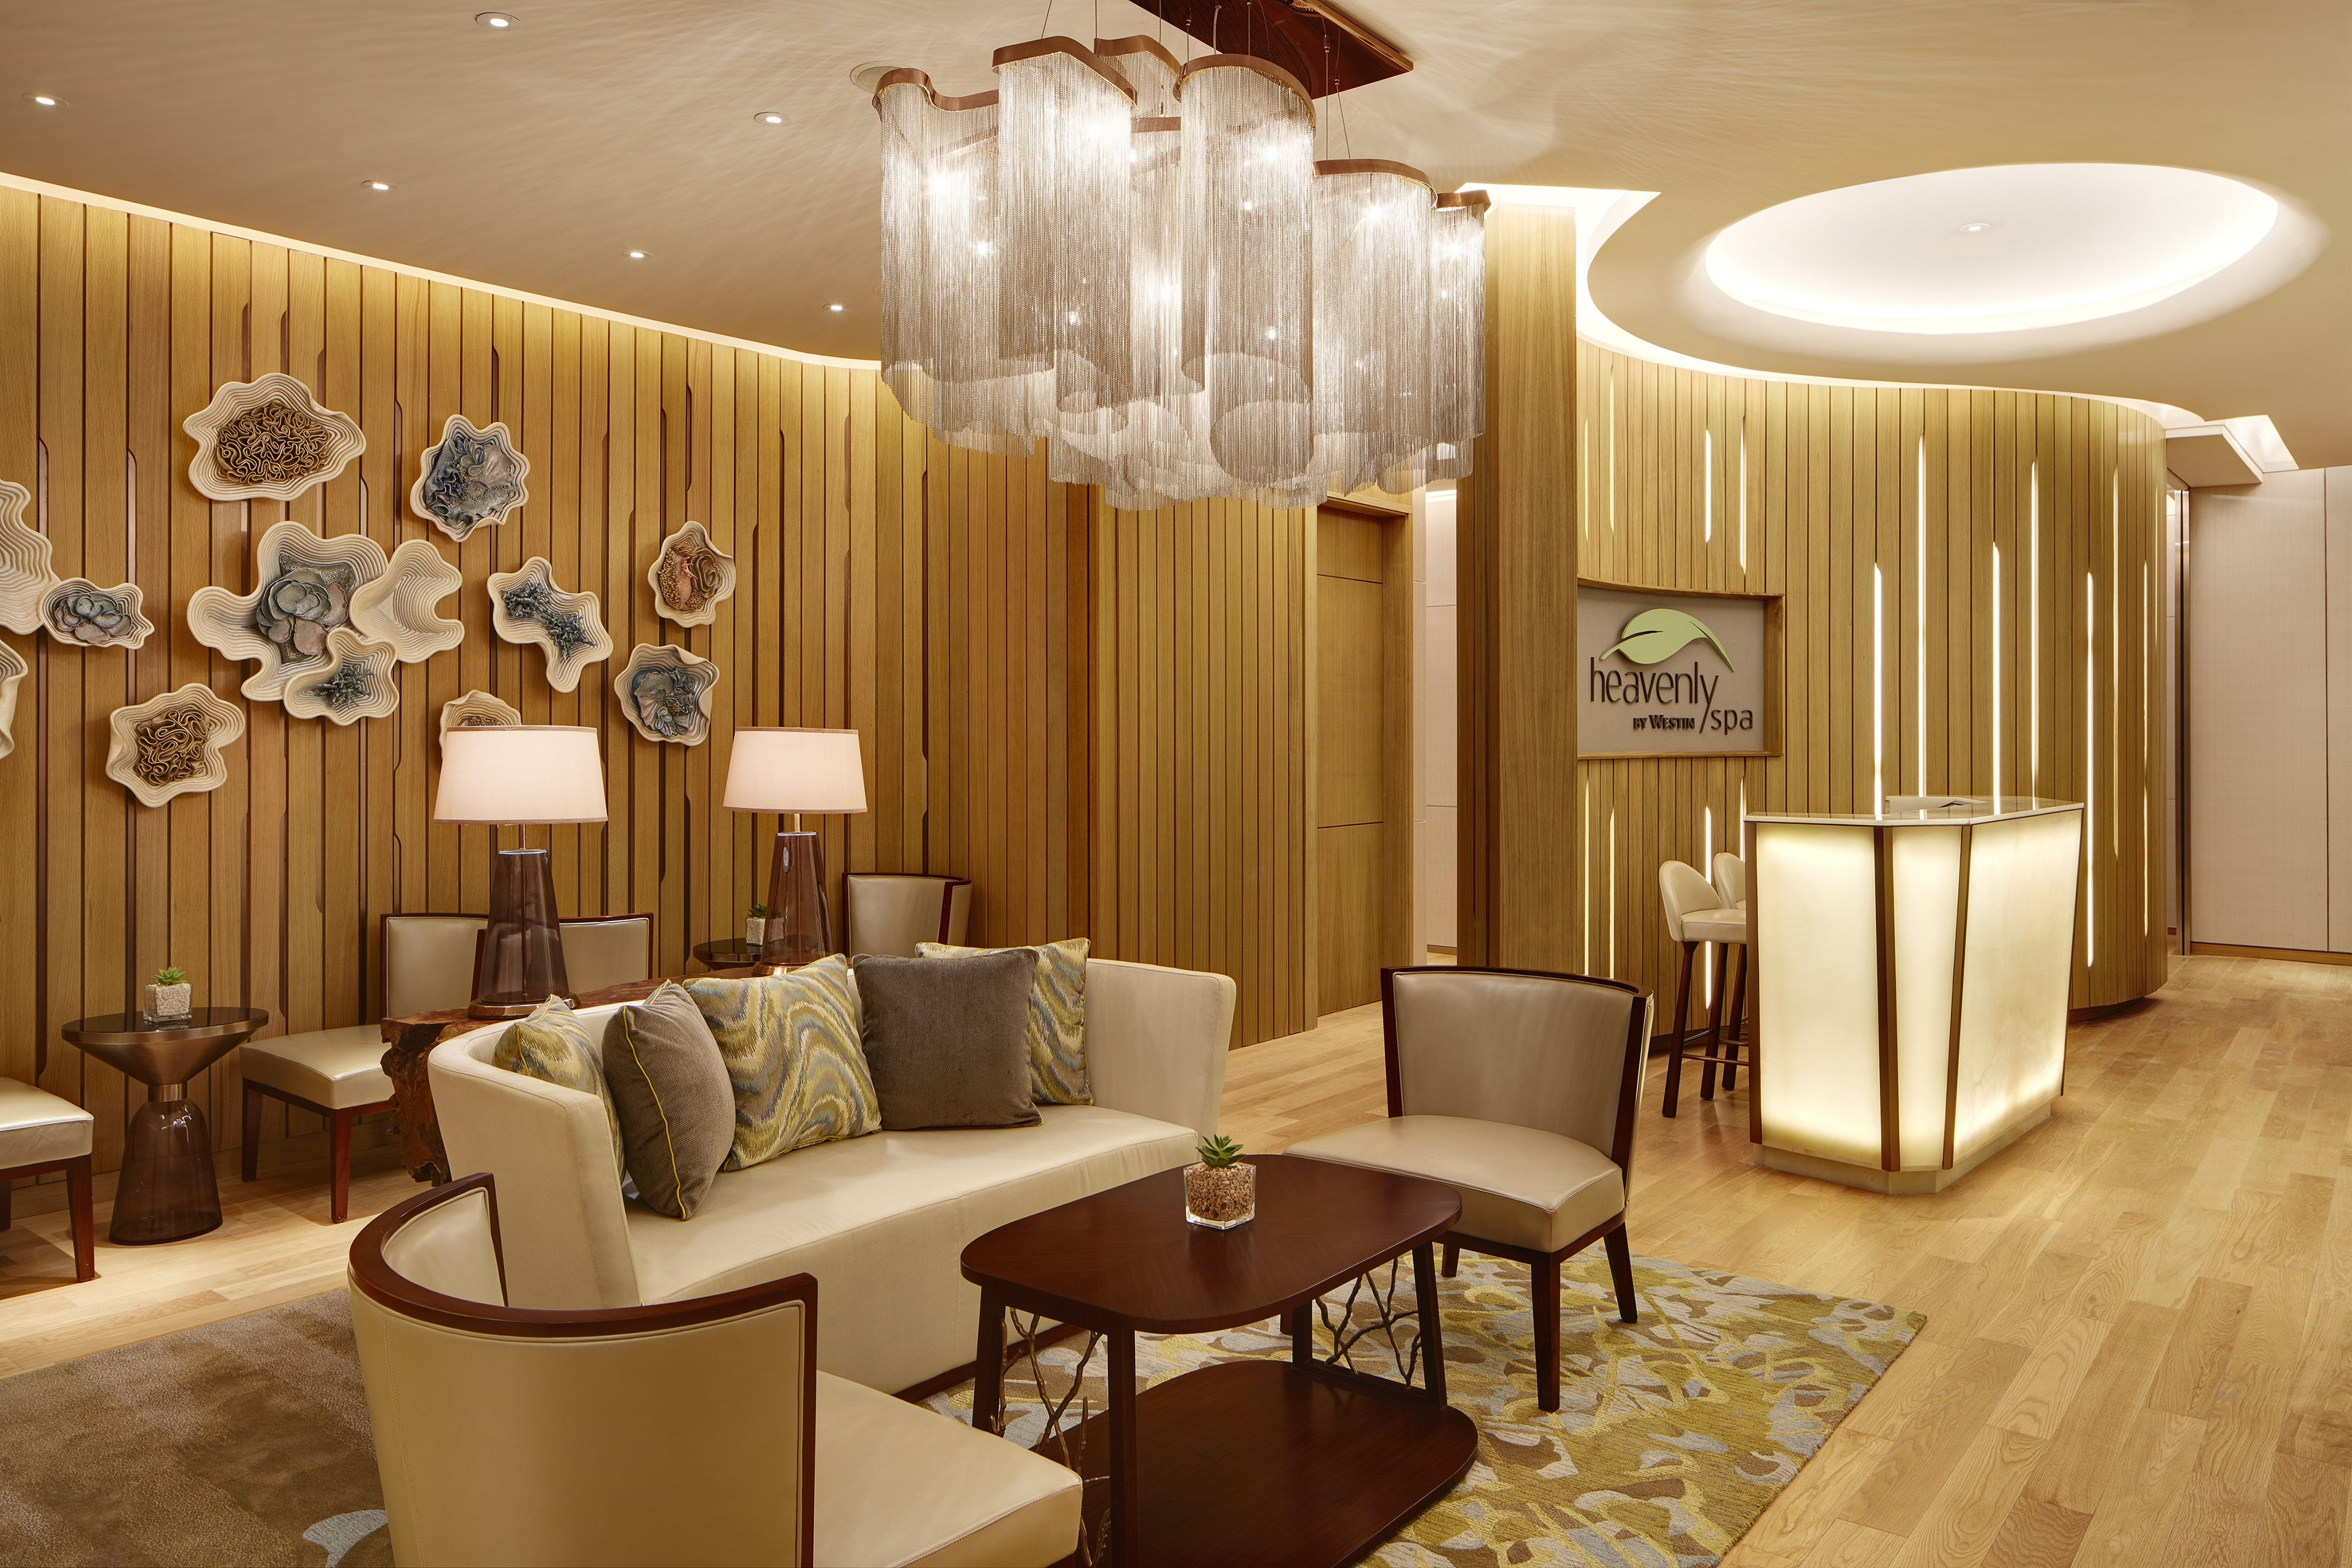 world double awards and the room interior treatment spa luxury restaurant design